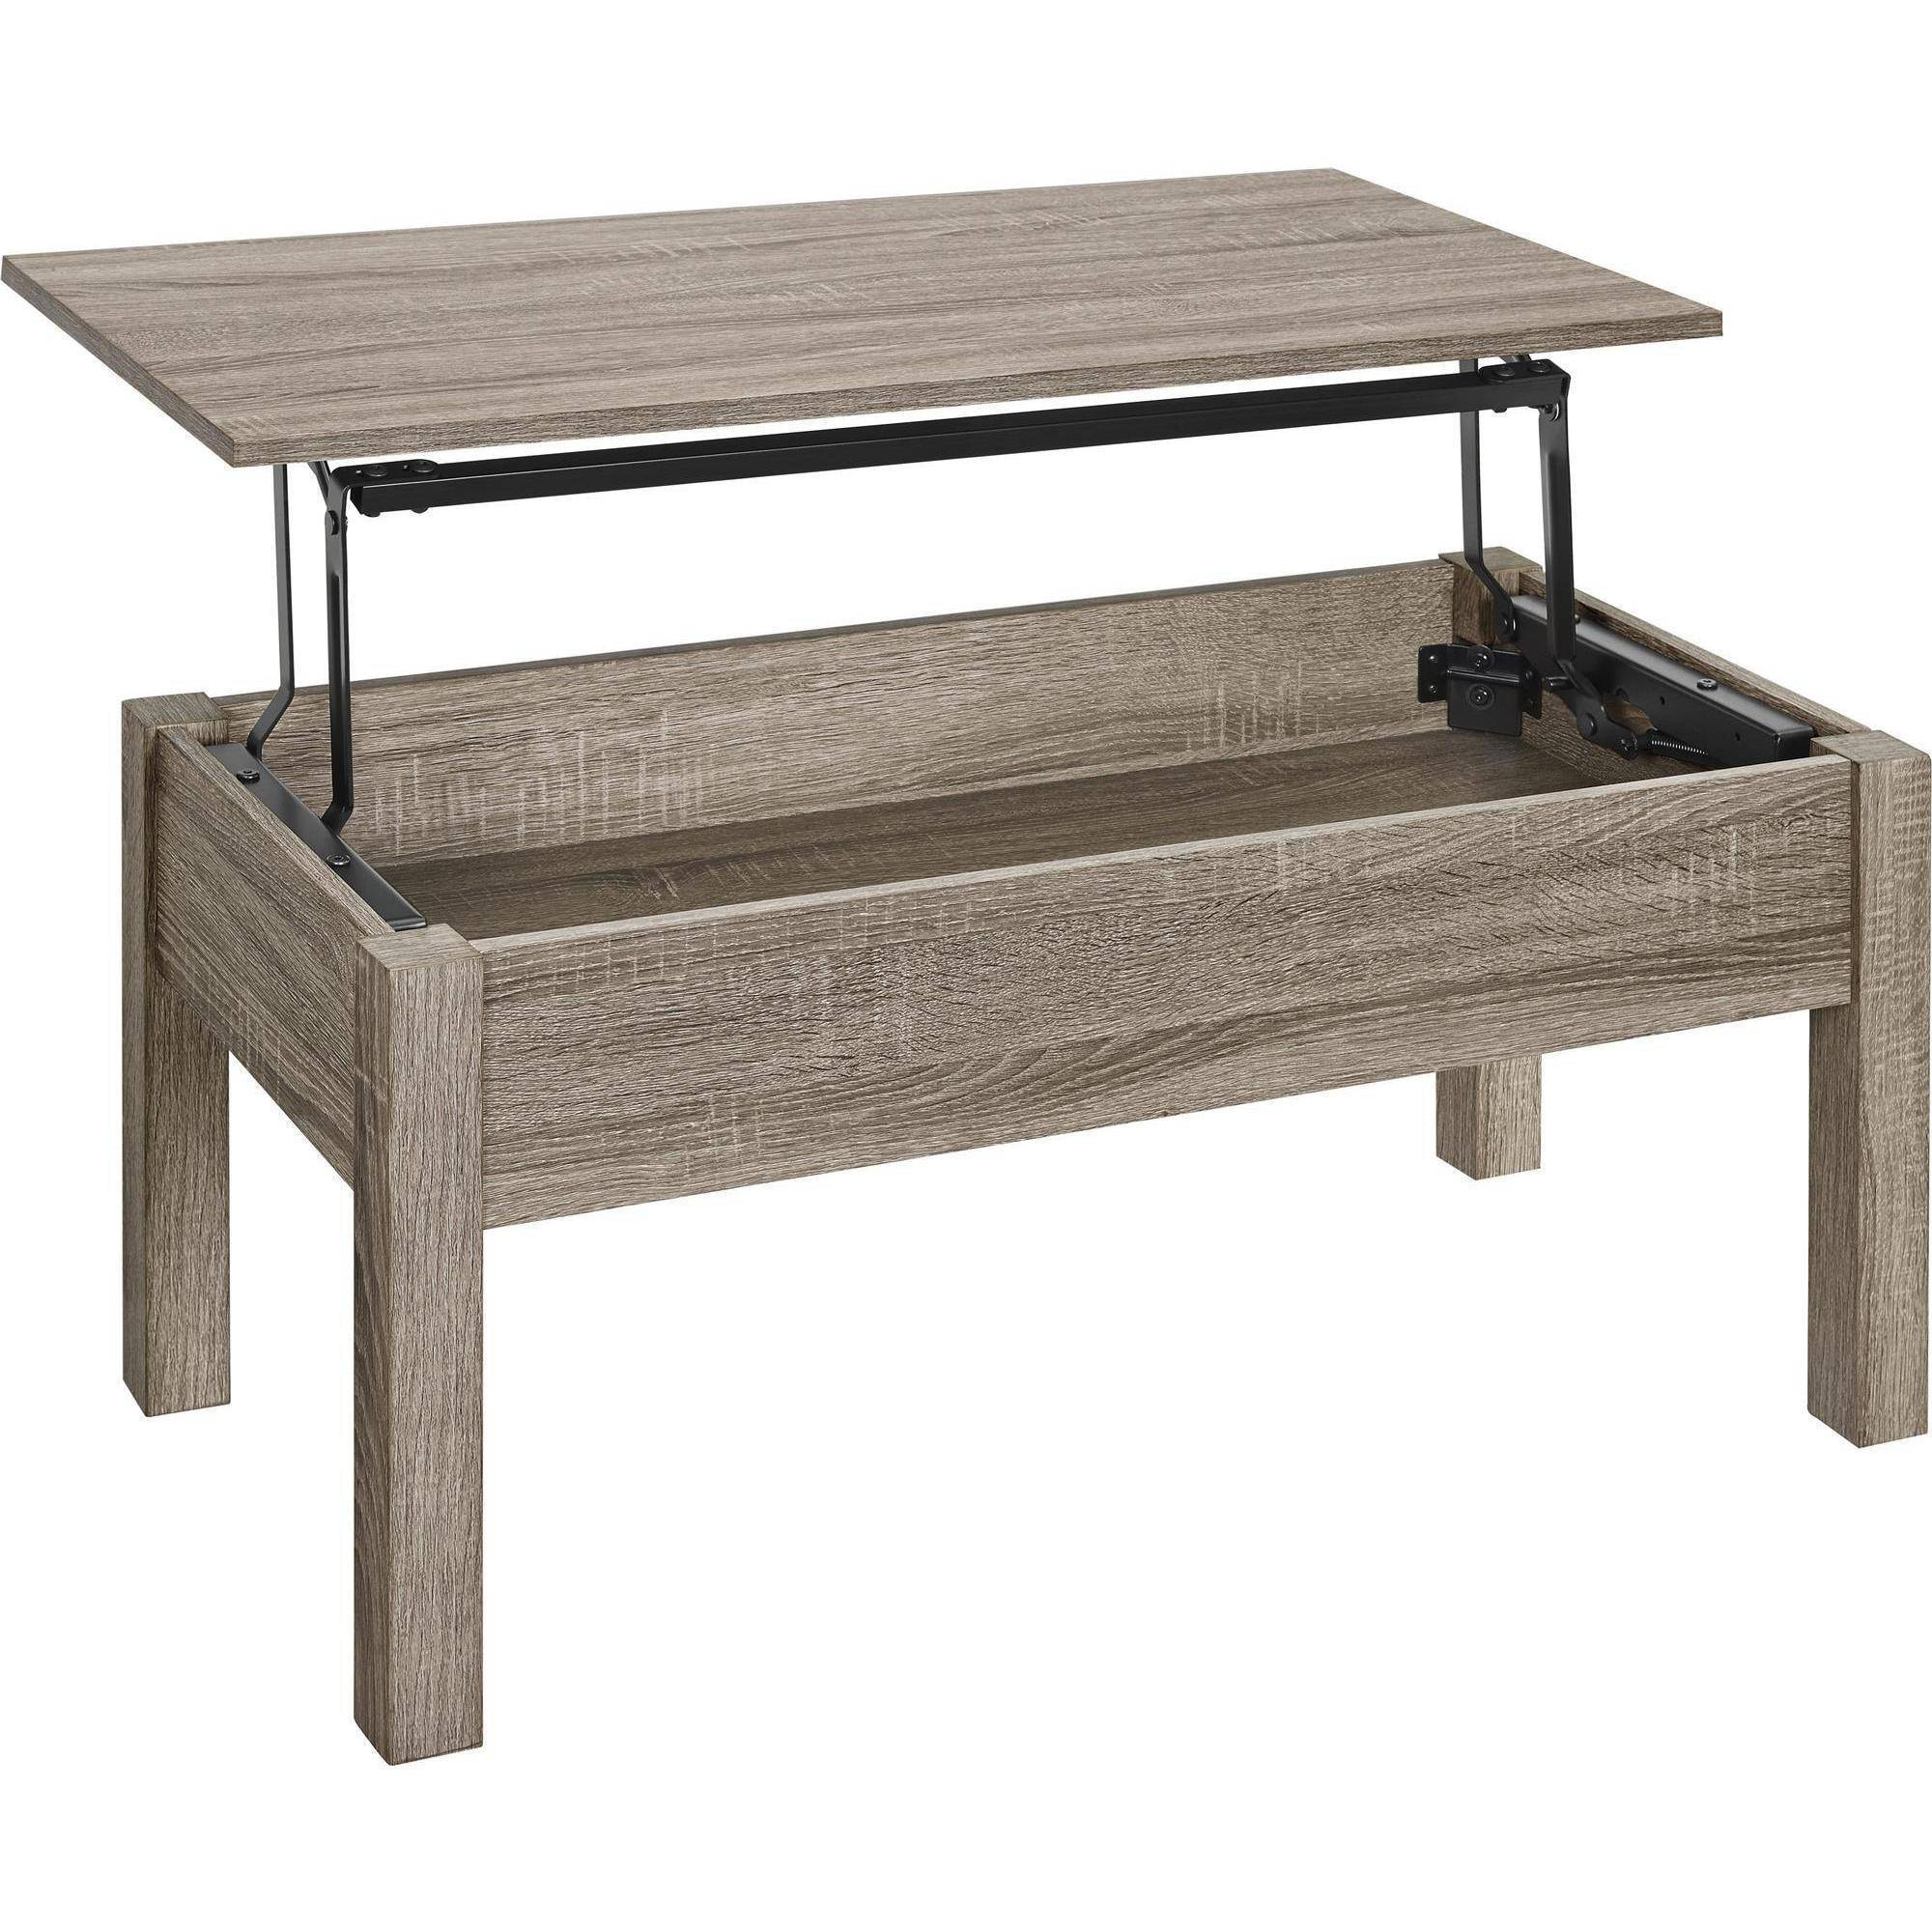 Mainstays Lift Top Coffee Table, Multiple Colors – Walmart With Regard To Lift Coffee Tables (View 8 of 30)